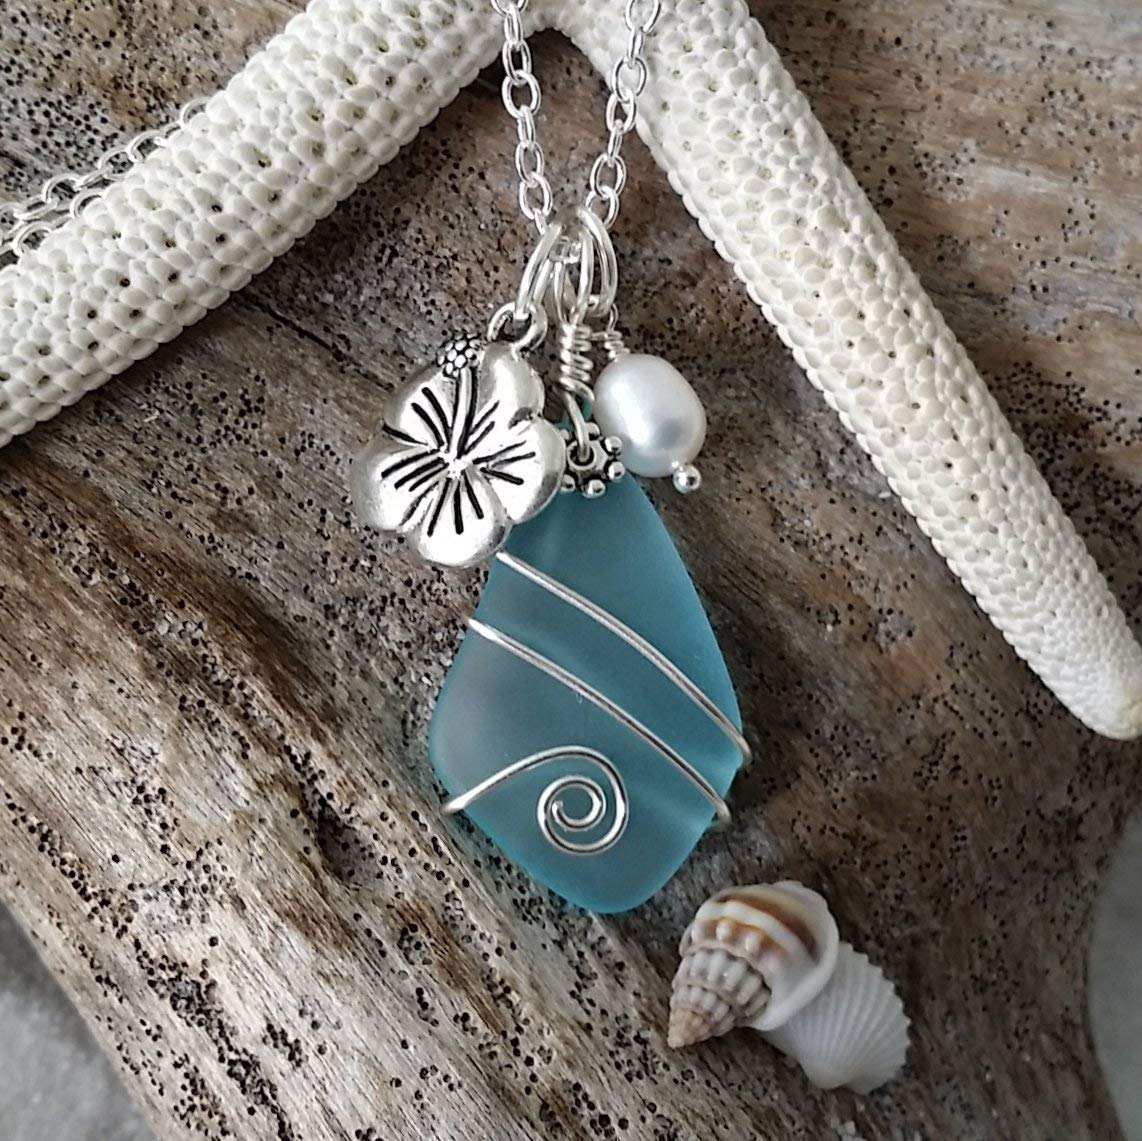 Handmade in Hawaii, wire wrapped blue sea glass necklace, Hawaiian state flower Hibiscus and freshwater pearl, sterling silver chain, Mother's Day Gift, FREE gift wrap, FREE gift message Mother's Day Gift